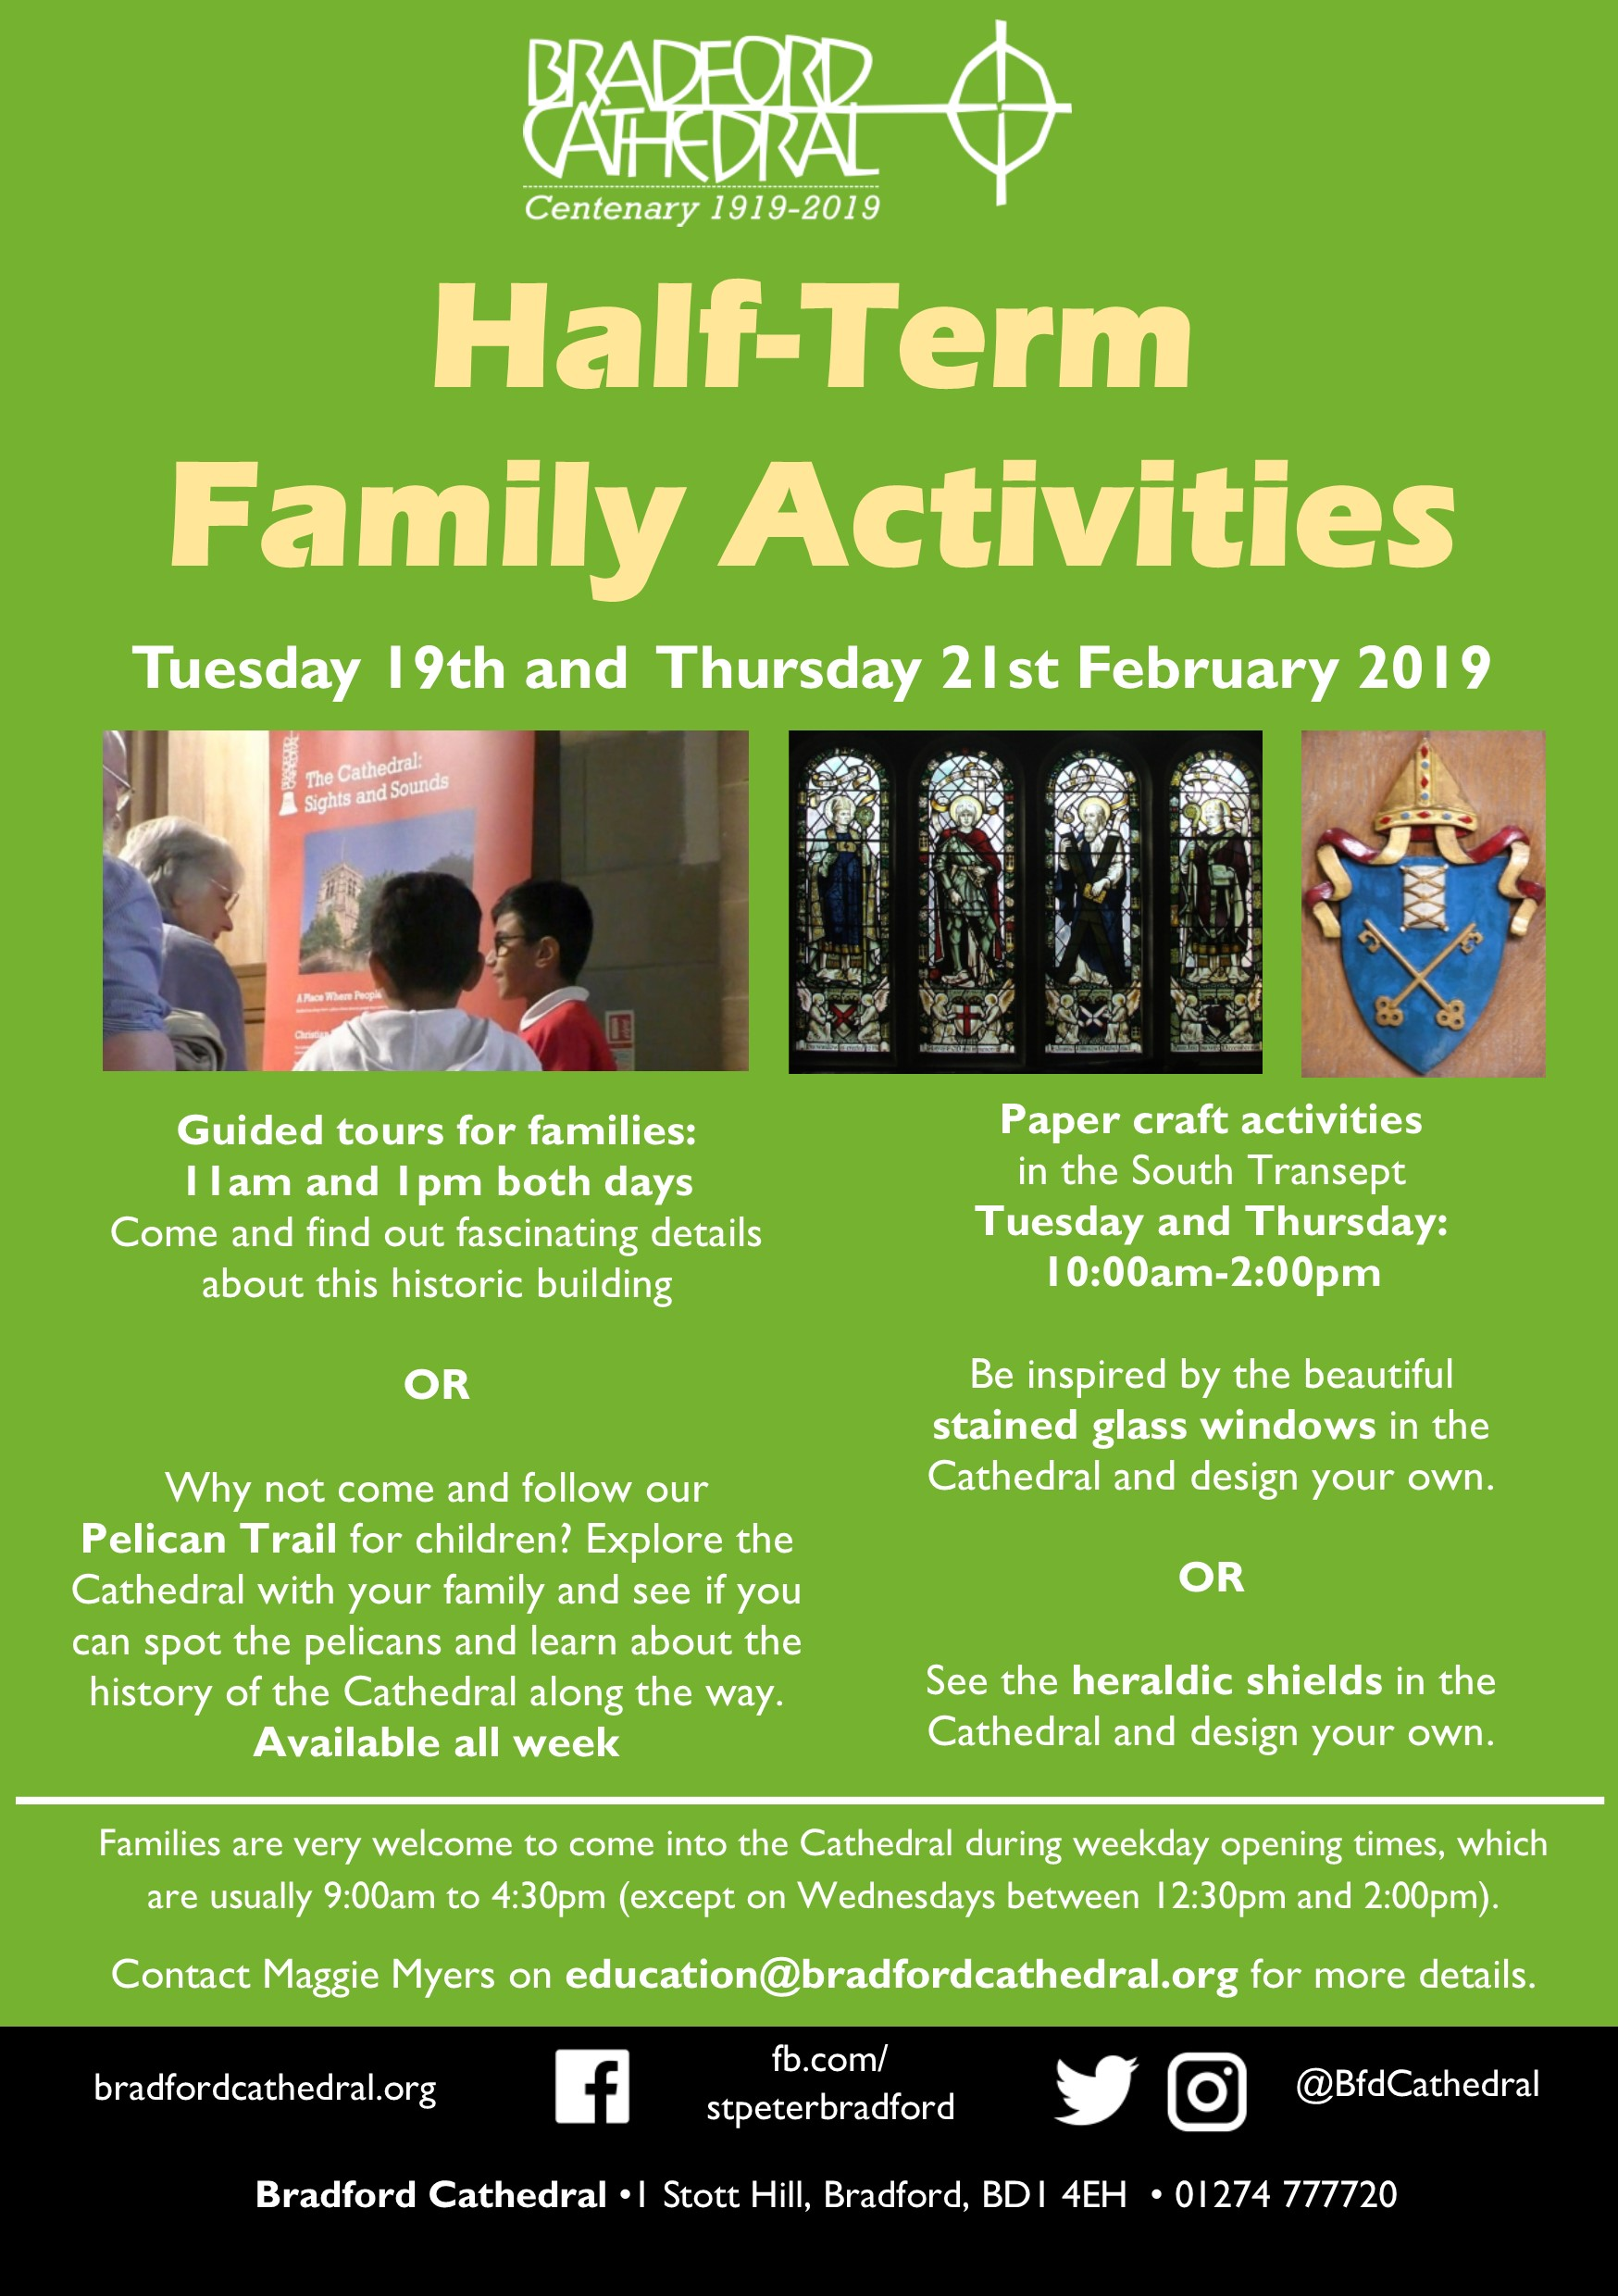 Half-Term Family Activities